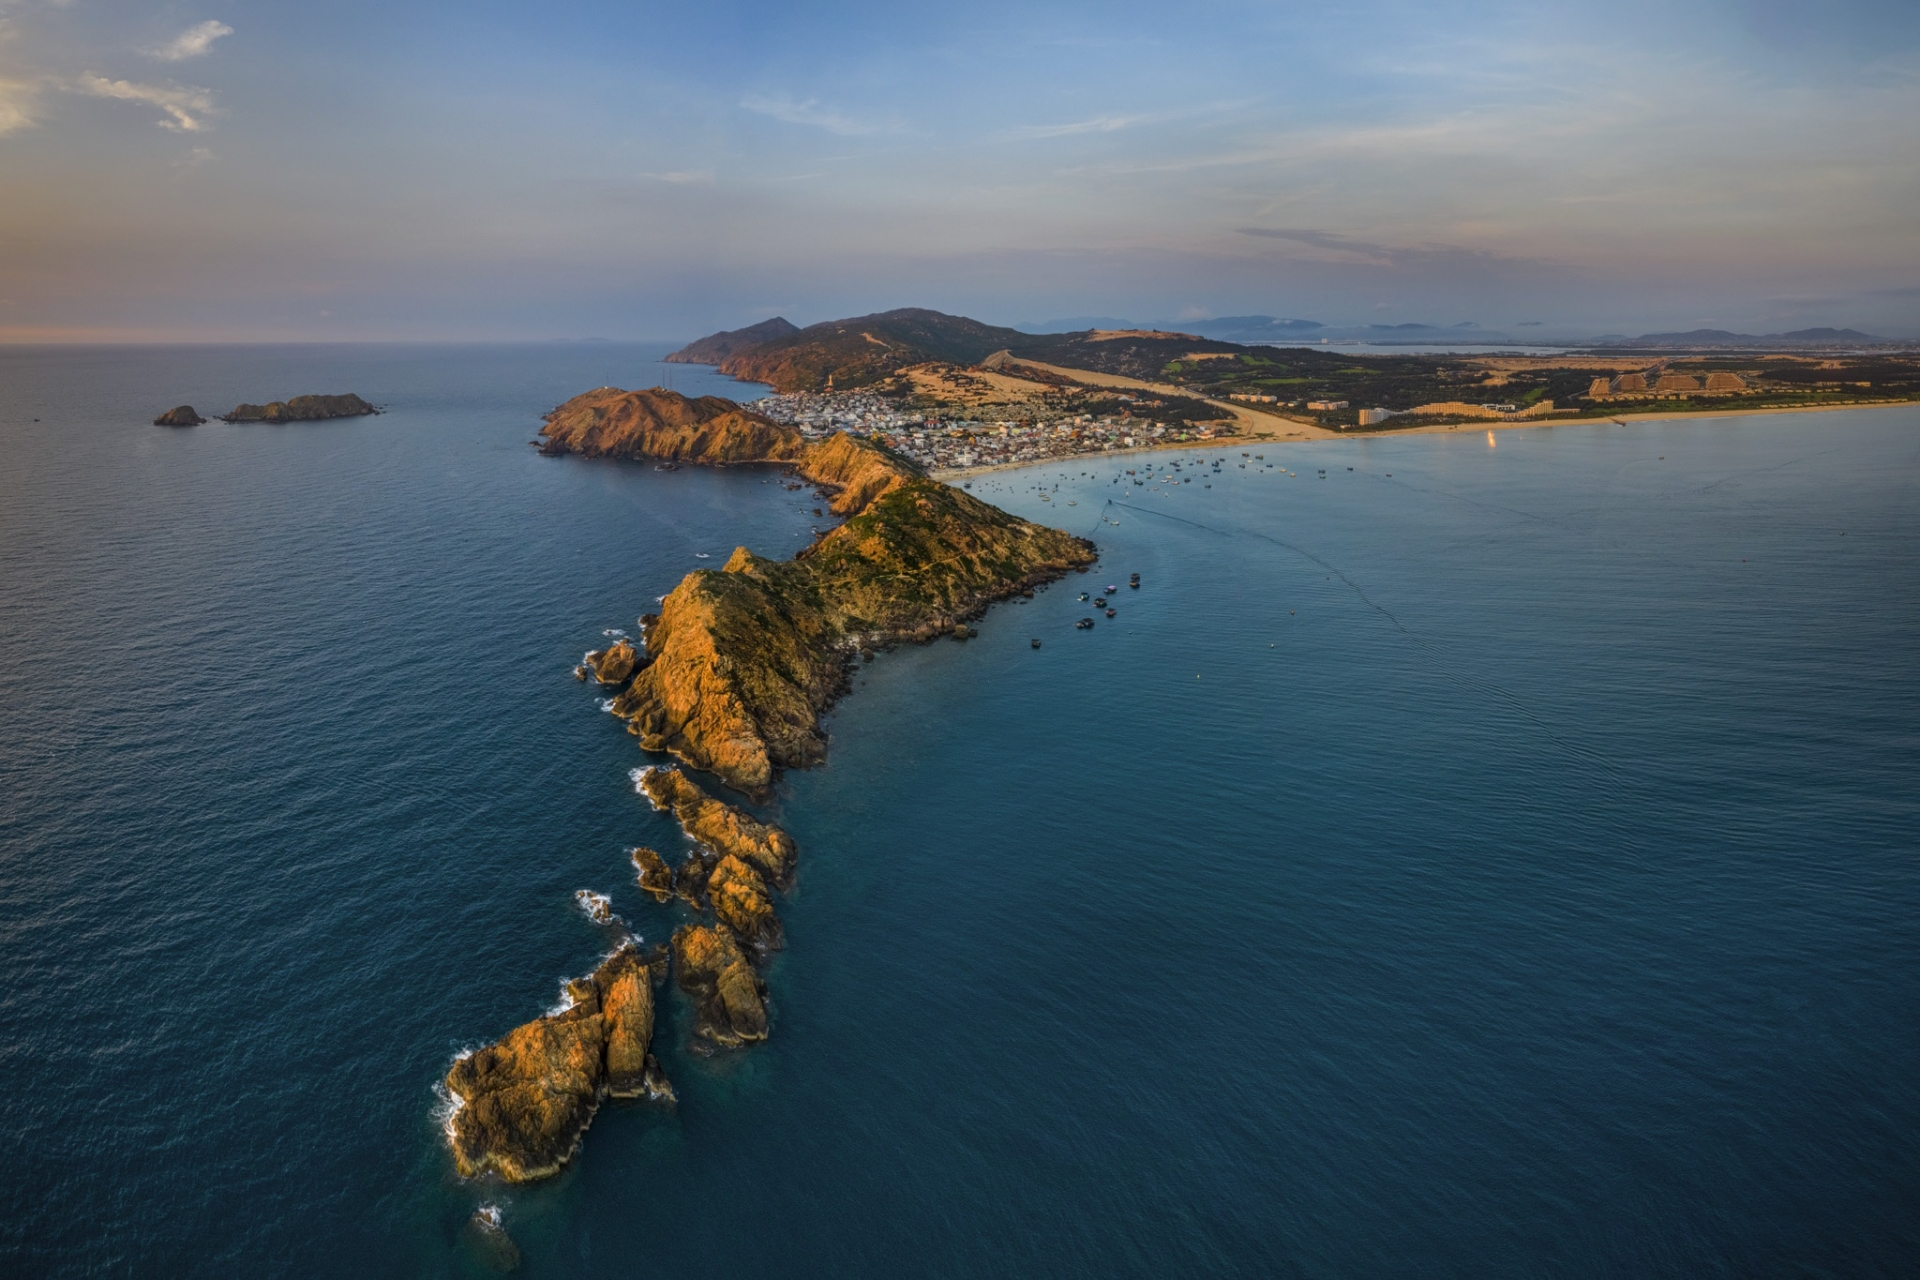 a glimpse into the wild and peaceful quy nhon